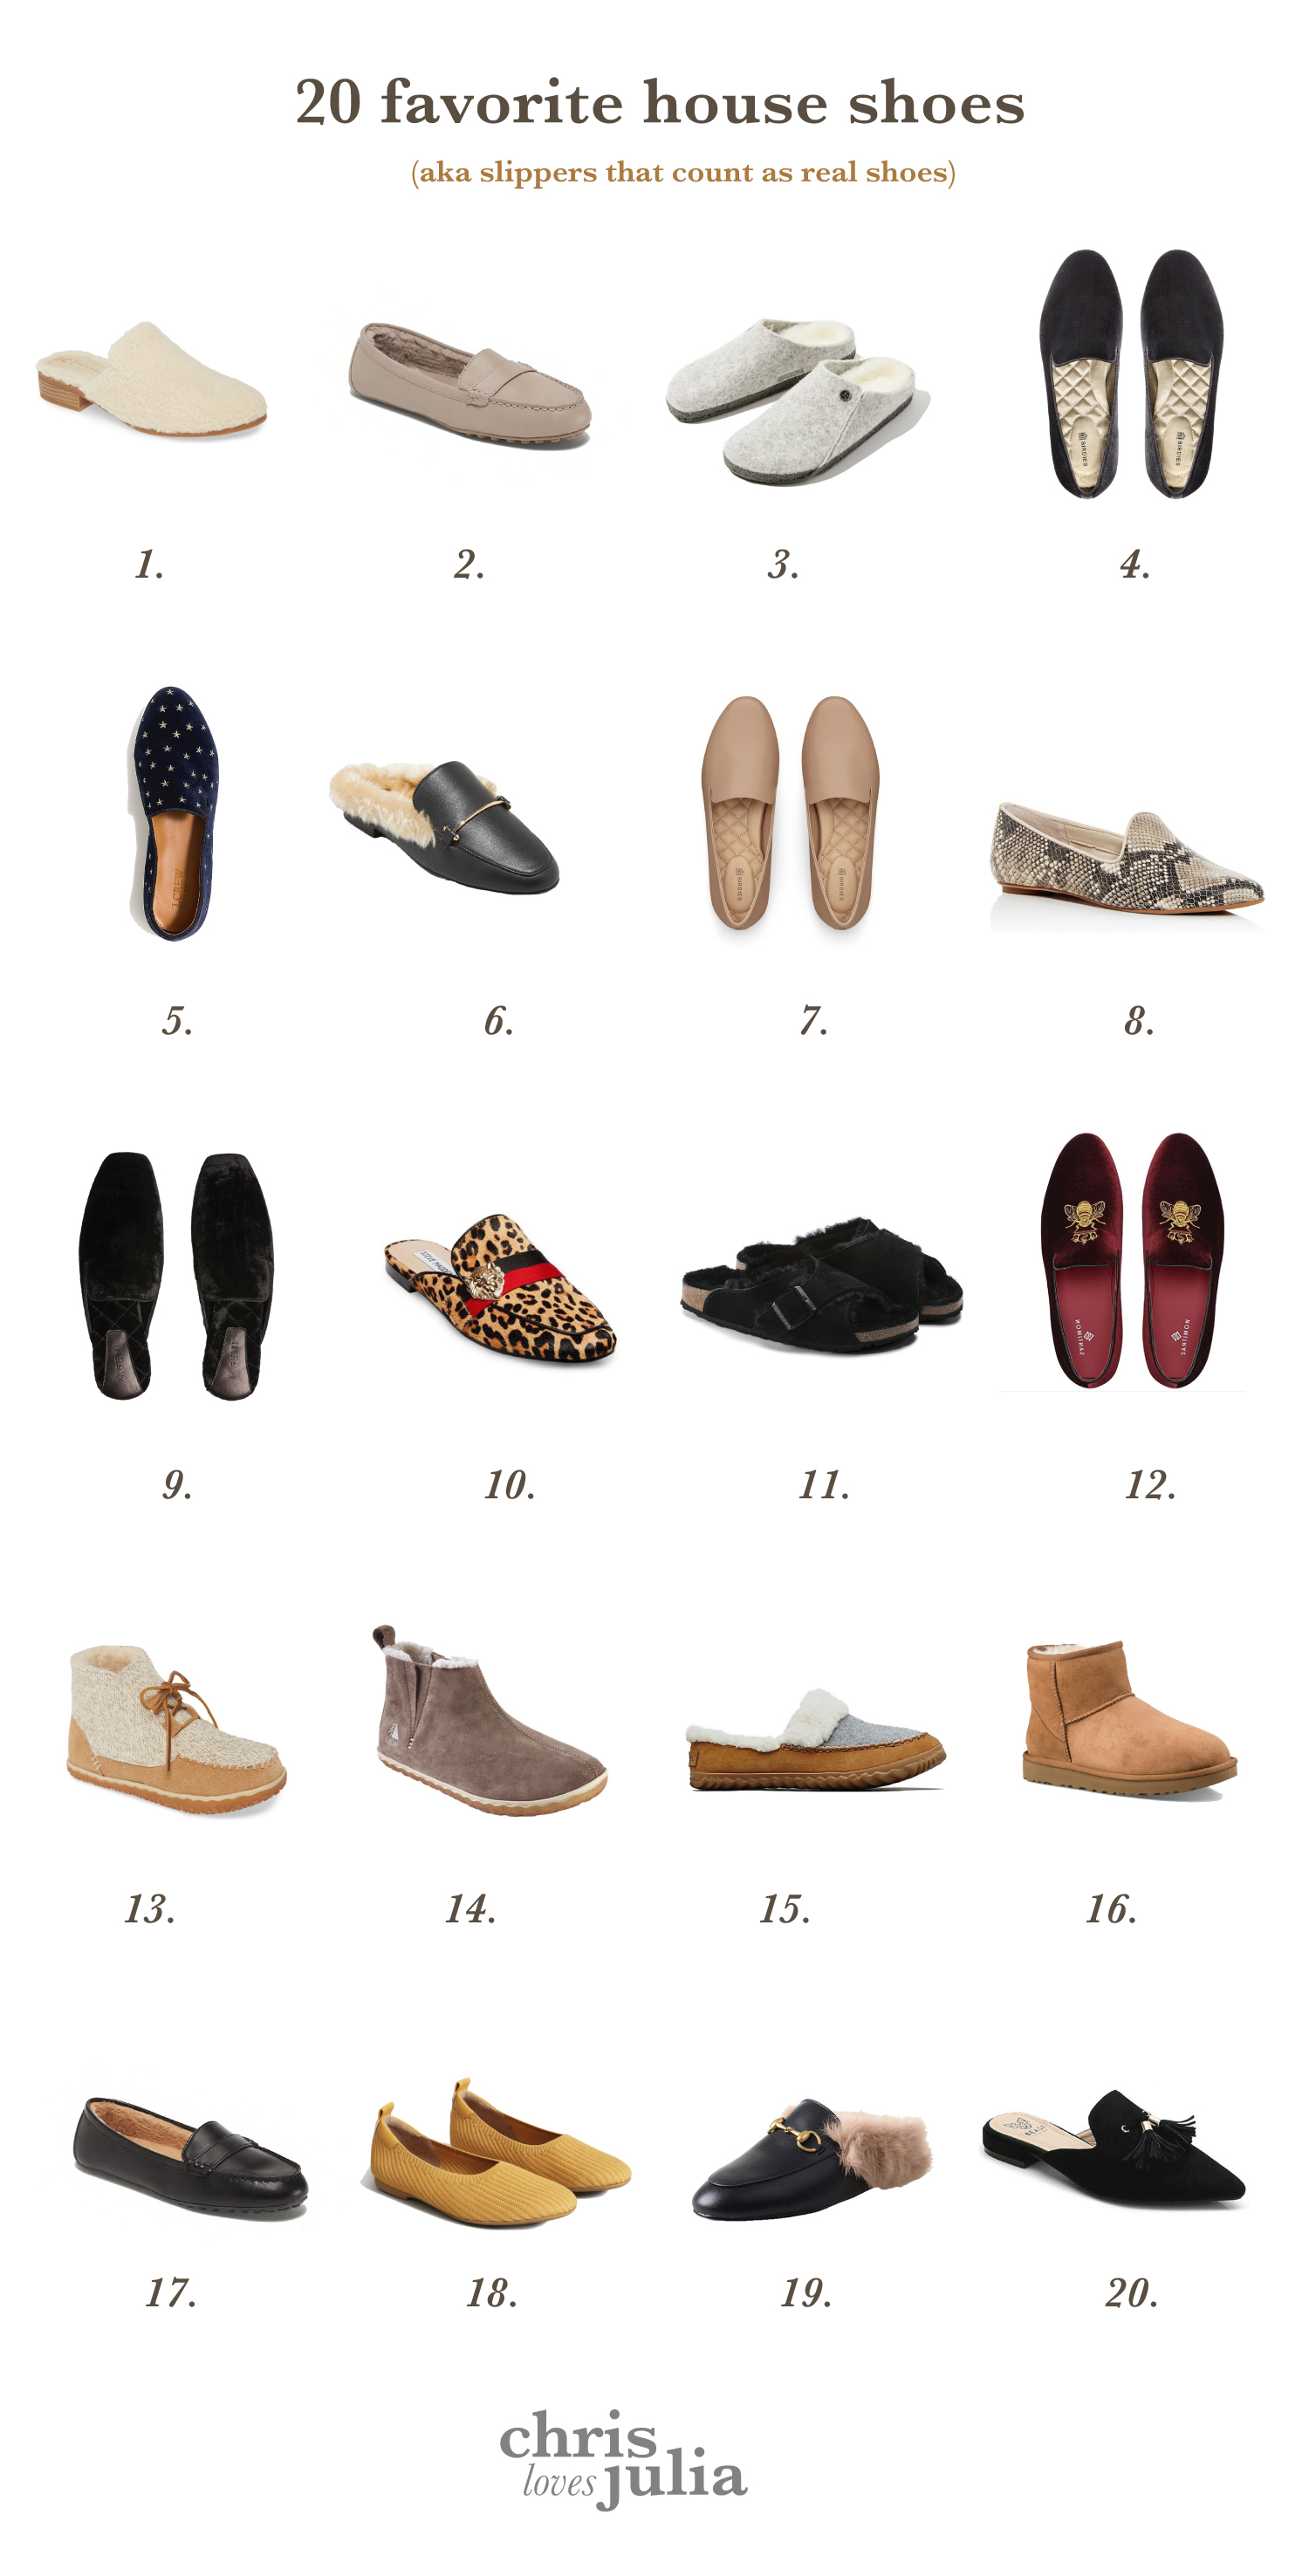 20 Favorite House Shoes Don T Call Them Slippers Chris Loves Julia